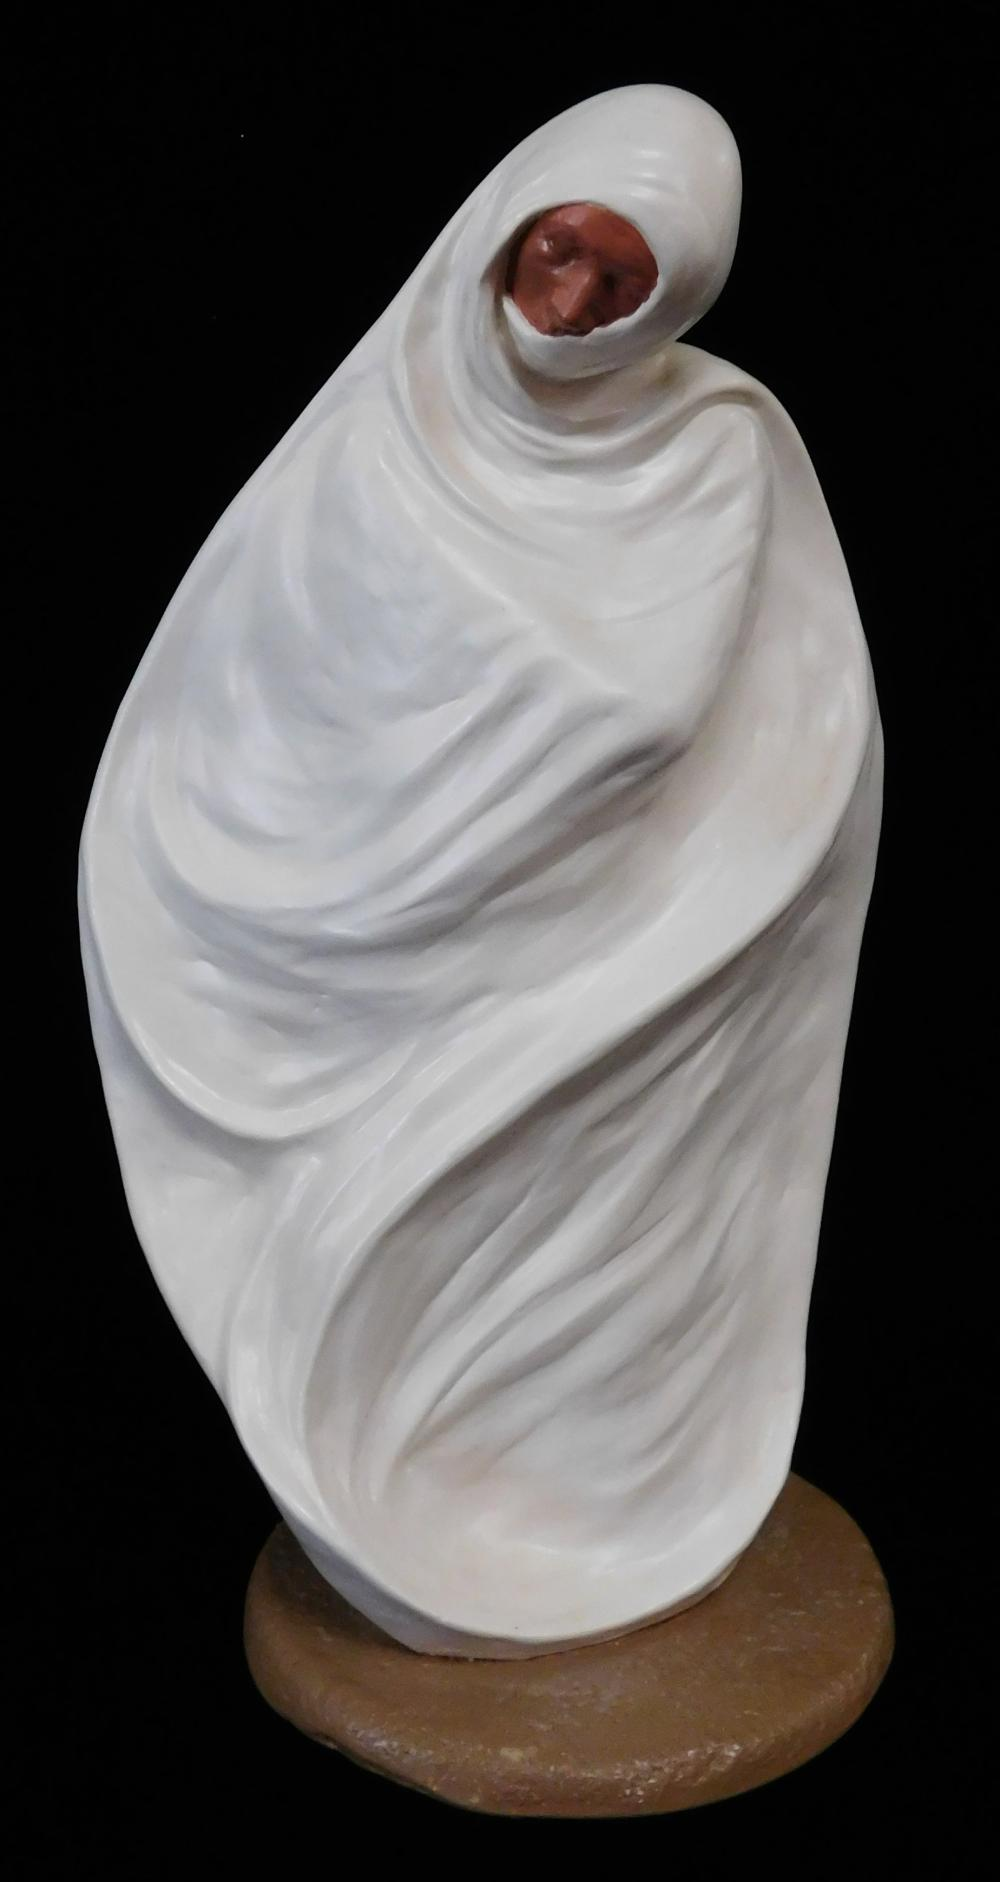 Jo Saylors (American, b. 1932), three modern ceramic figures, limited editions, all shrouded in white cloth with just the face showi...